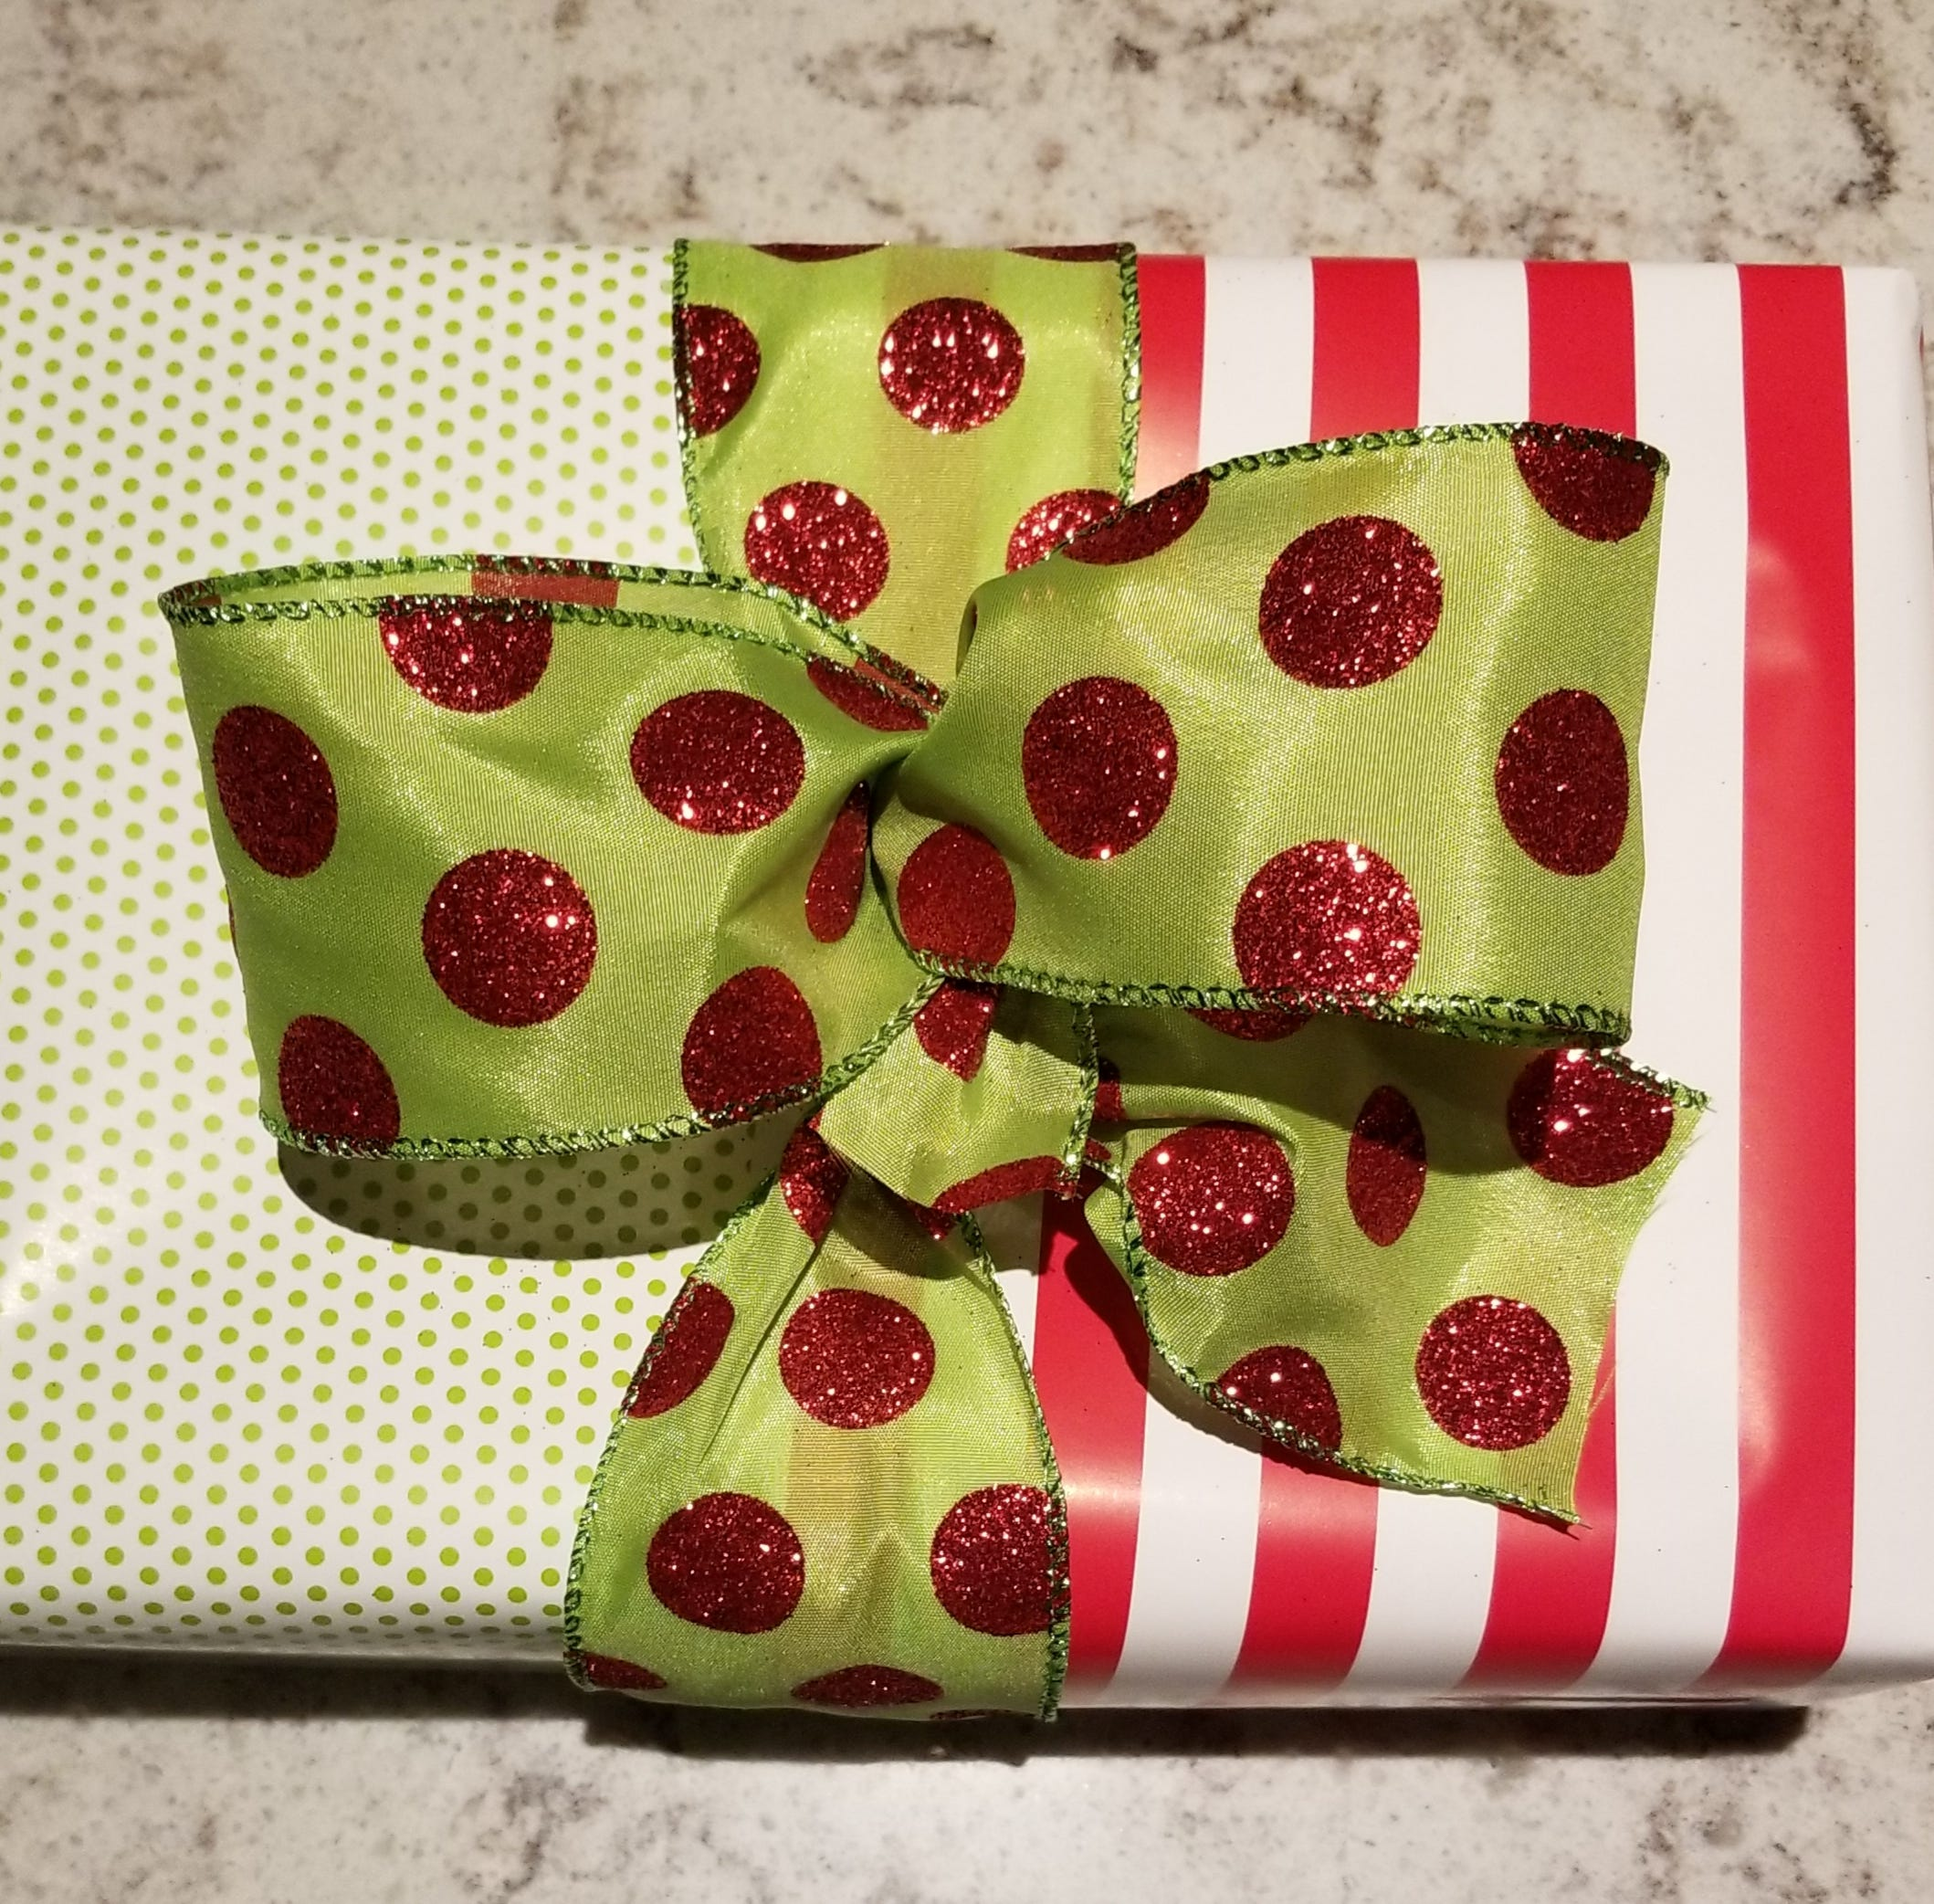 Around the Home: Gift wrapping